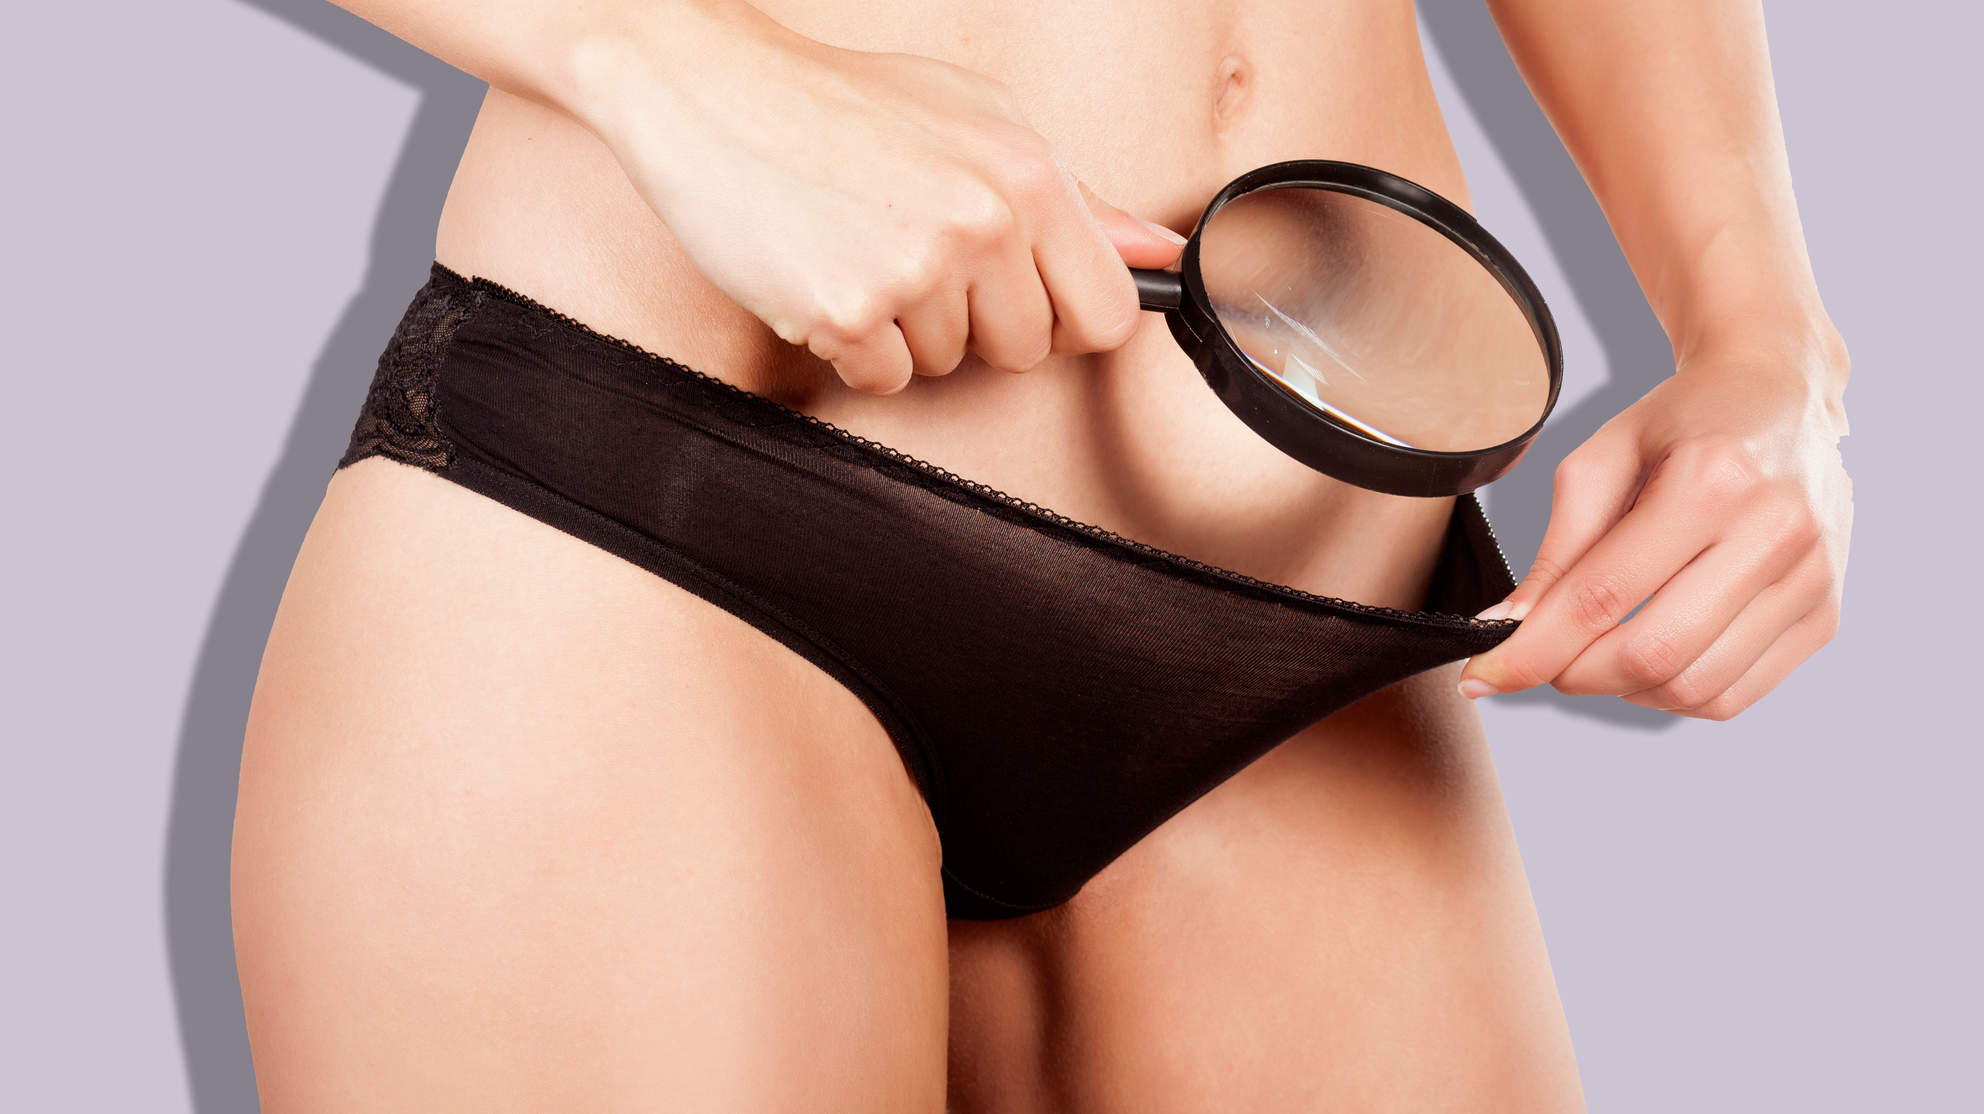 5 Ways to Groom Your Pubic Hair, Ranked From Best to Worst